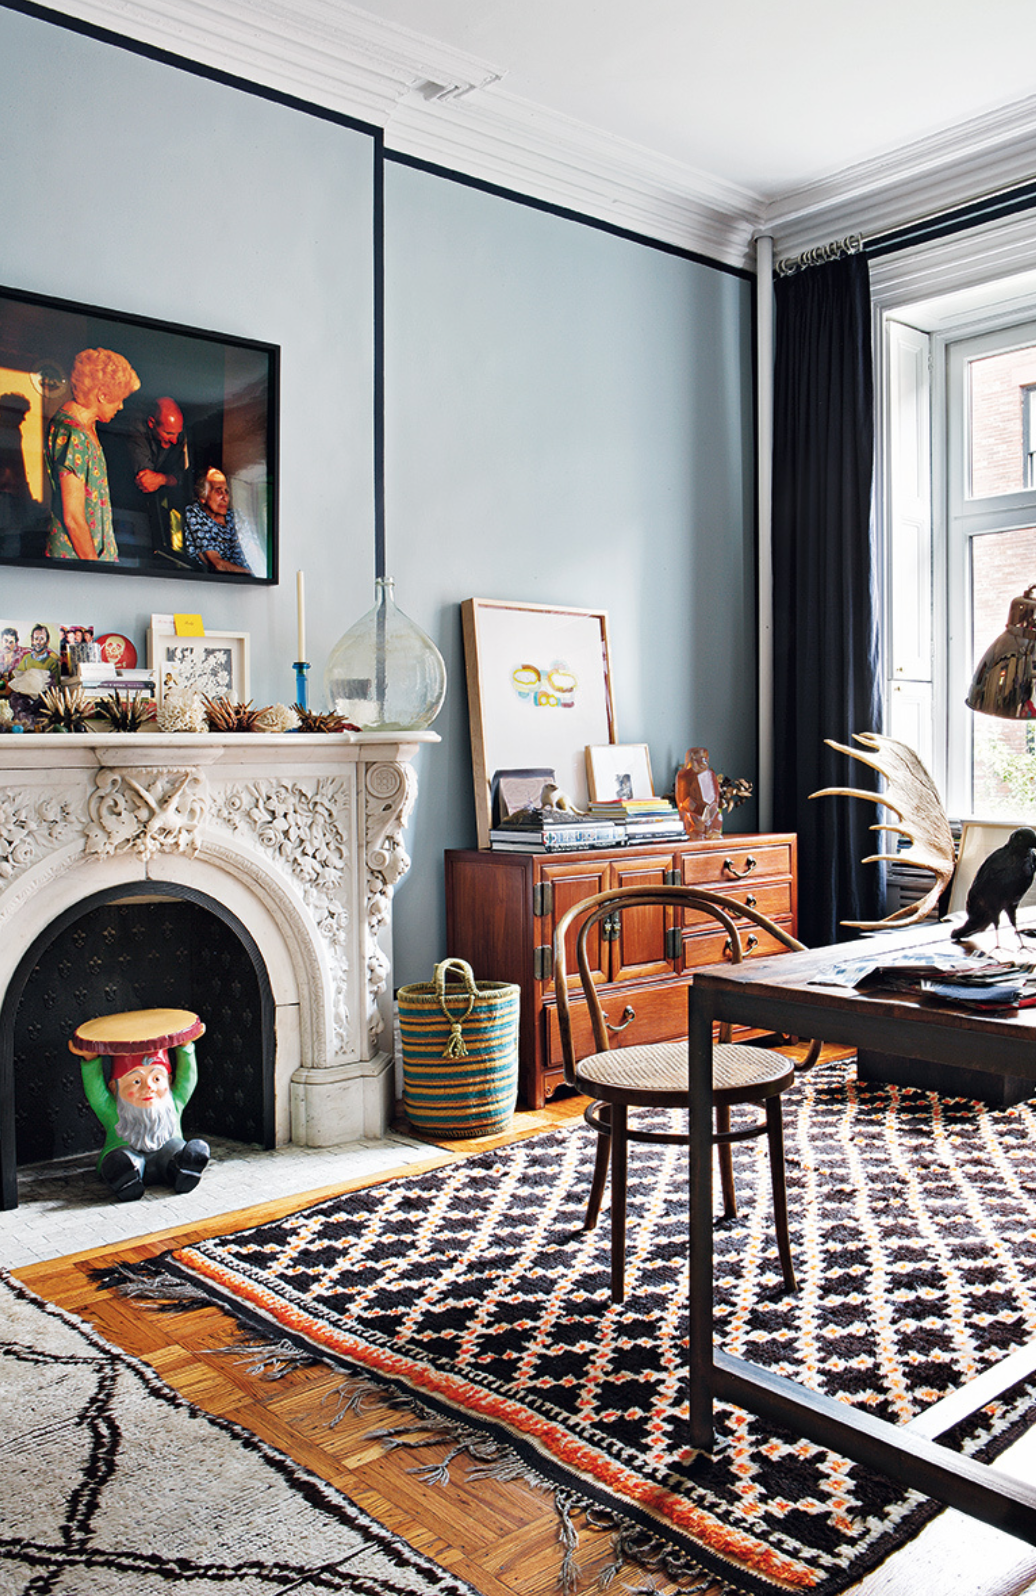 Photo courtesy of Elle Decor Espana (Look at the border around the walls in navy- such a cool design detail!)